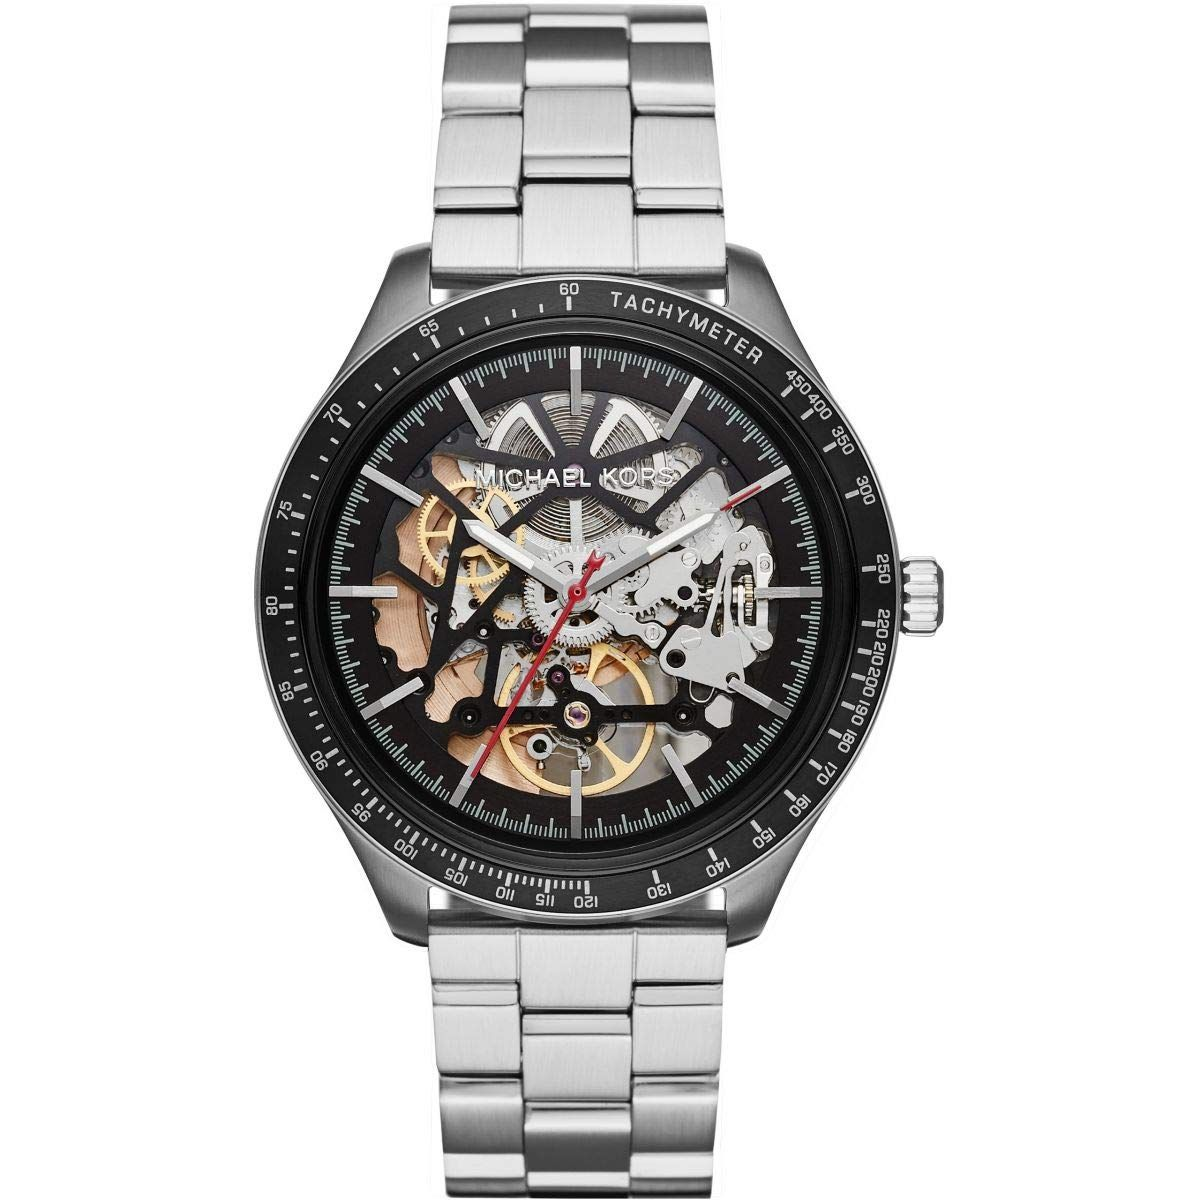 ae69d5eed617 Michael Kors Mens Analogue Automatic Watch with Stainless Steel Strap  MK9037  Amazon.co.